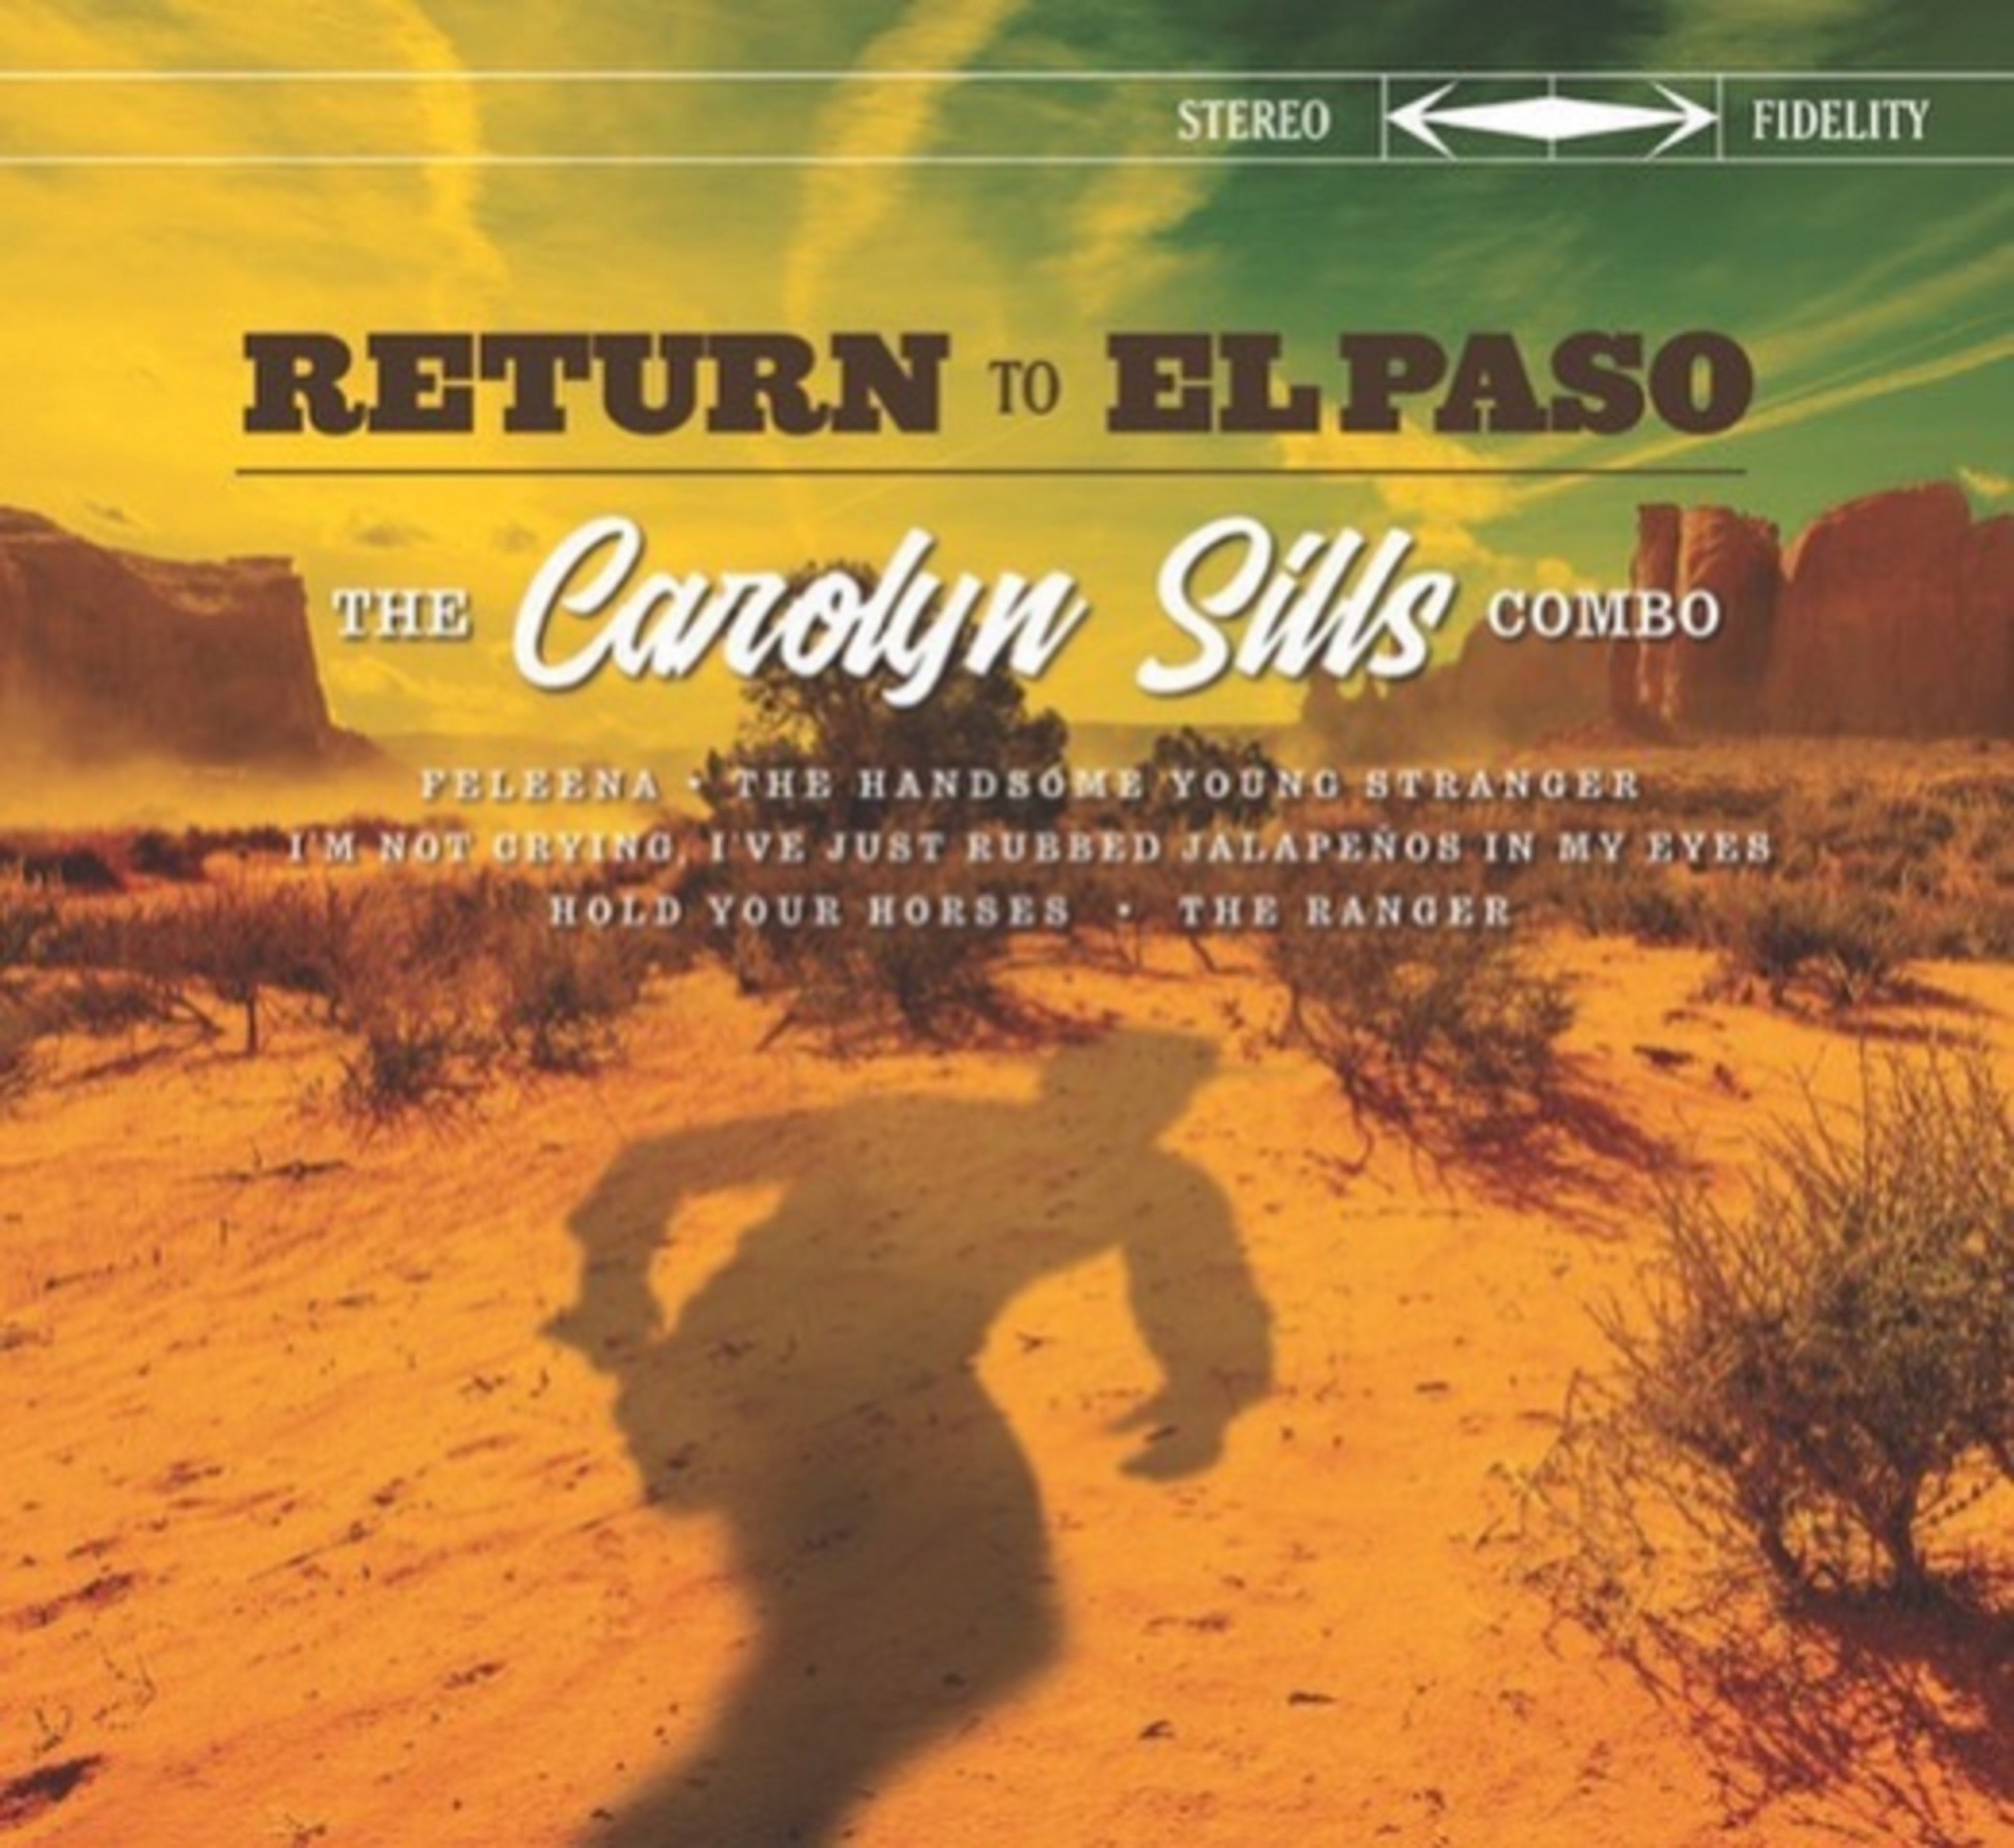 "The Carolyn Sills Combo Reimagines Marty Robbins' Iconic 'El Paso"" for the Song's 60th Anniversary"